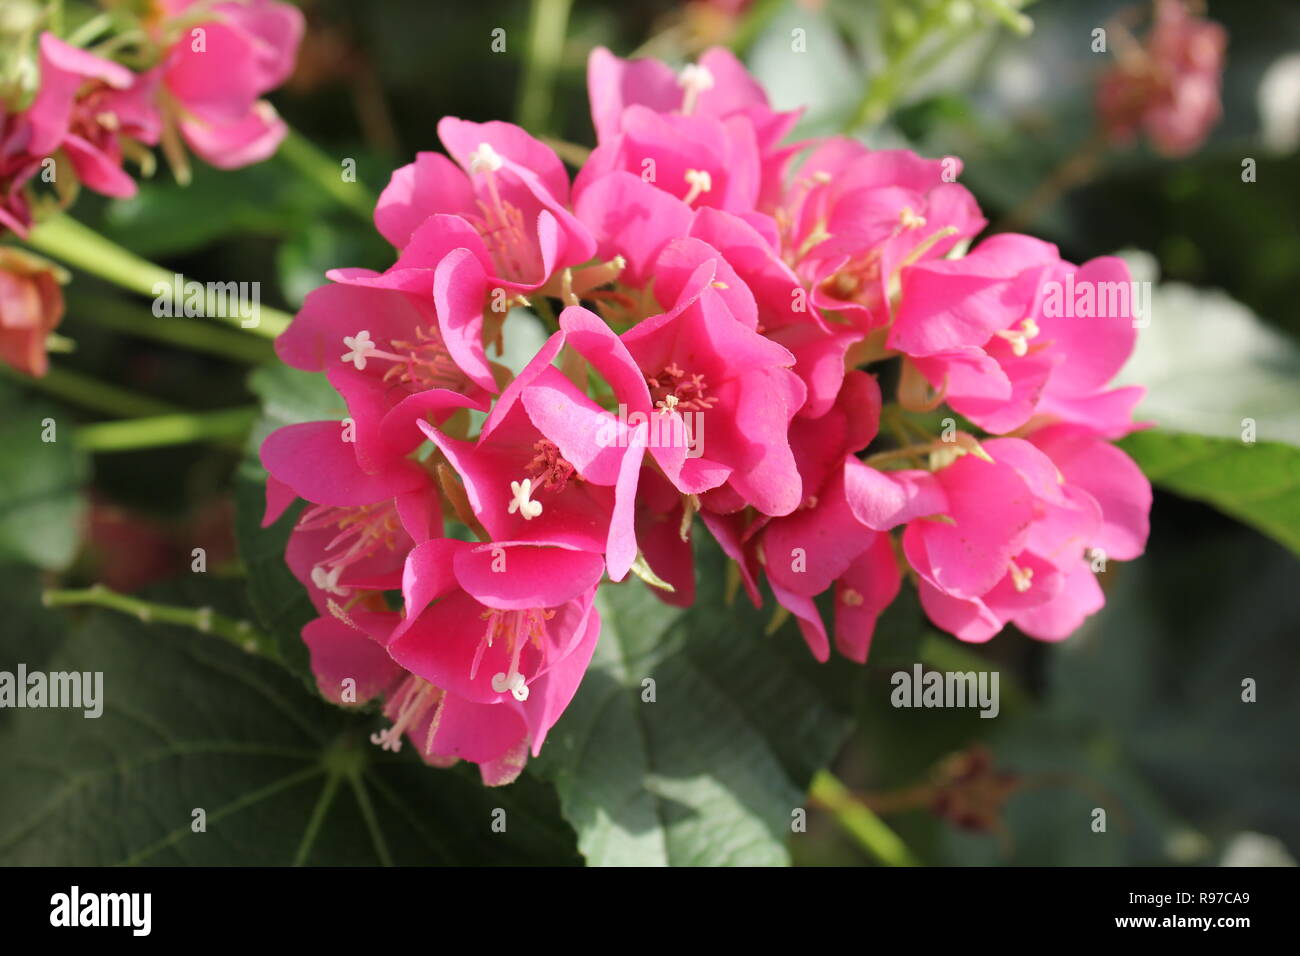 Rare Pink Dombeya, Dombeya calantha, flowering plant at the Think Pink Holiday Flower Show at the Garfield Park Conservatory in Chicago, Illinois. - Stock Image